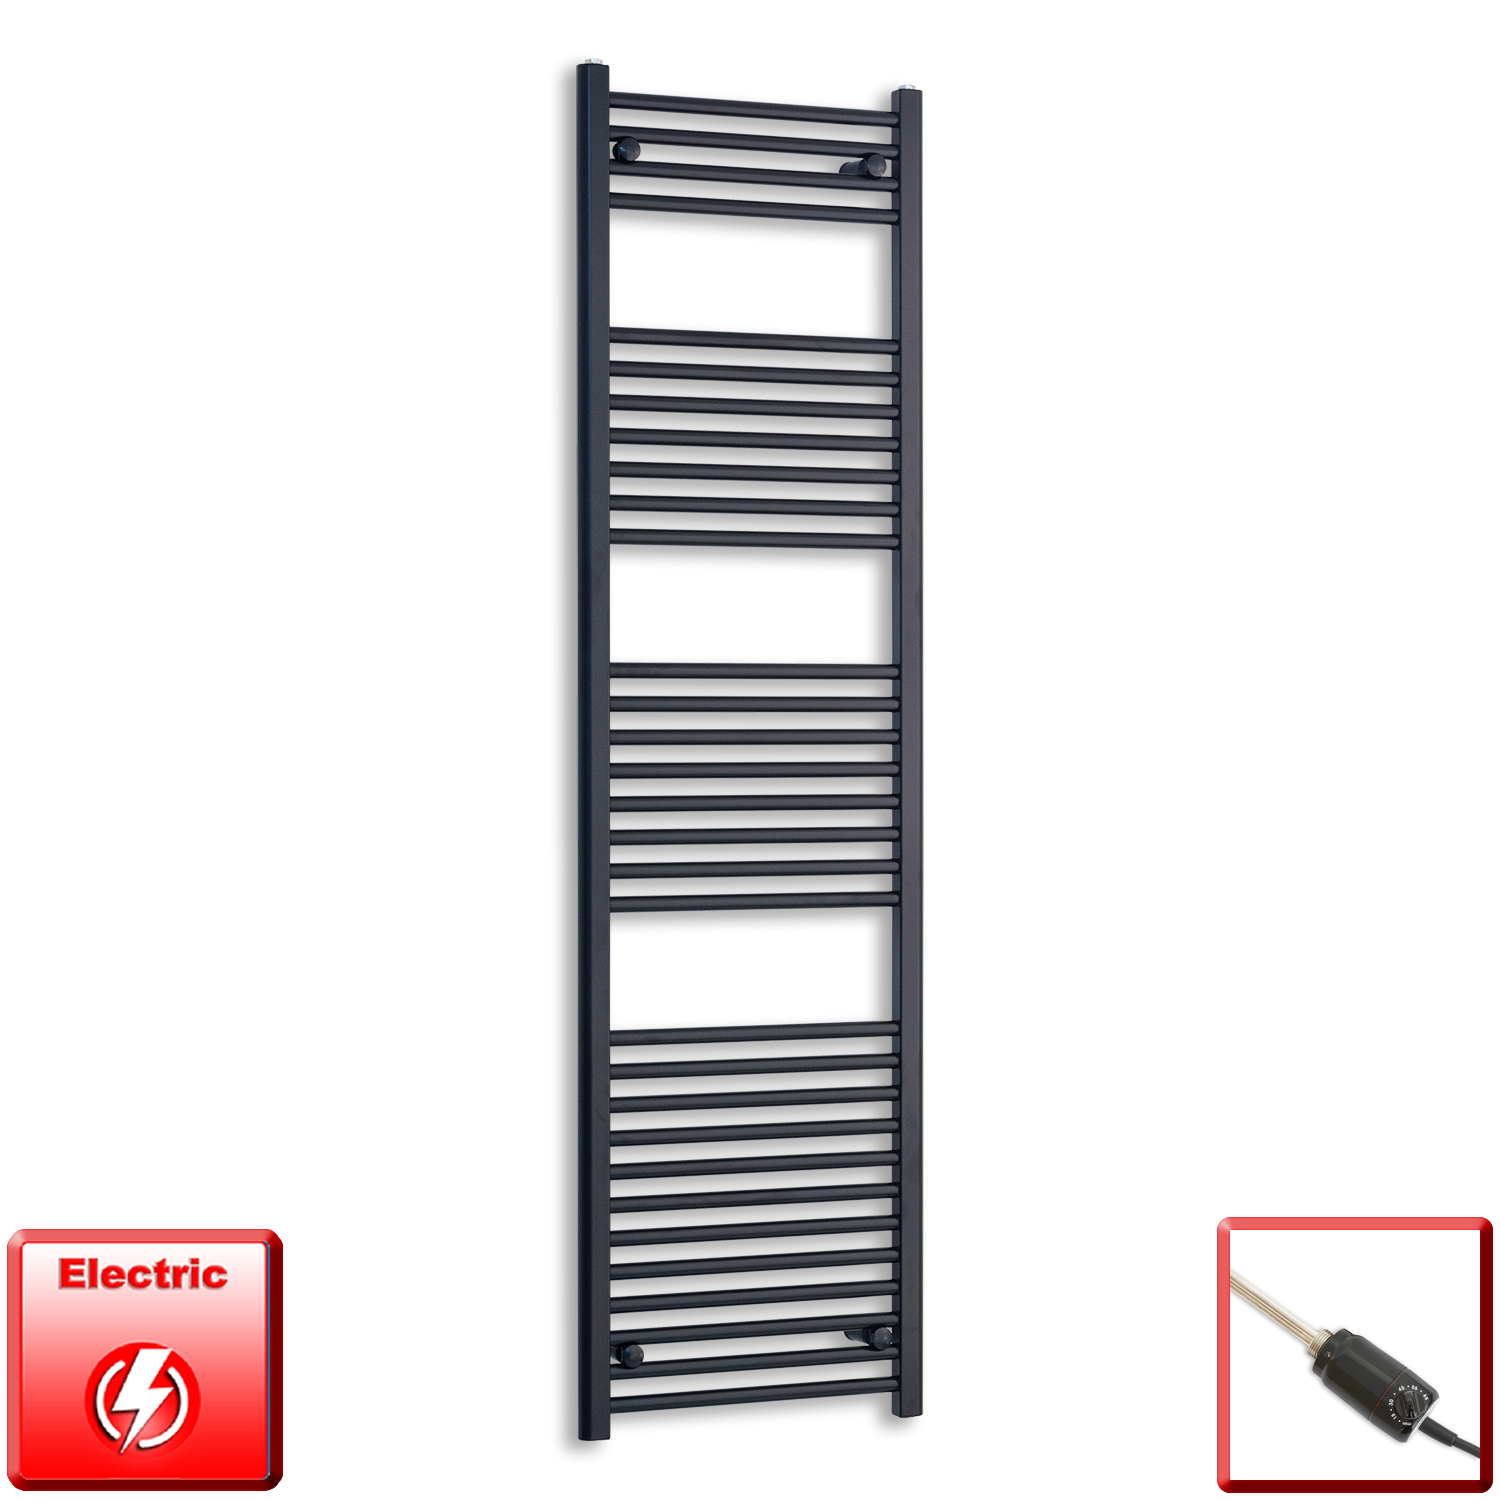 450mm Wide 1800mm High Flat Black Pre-Filled Electric Heated Towel Rail Radiator HTR,GT Thermostatic